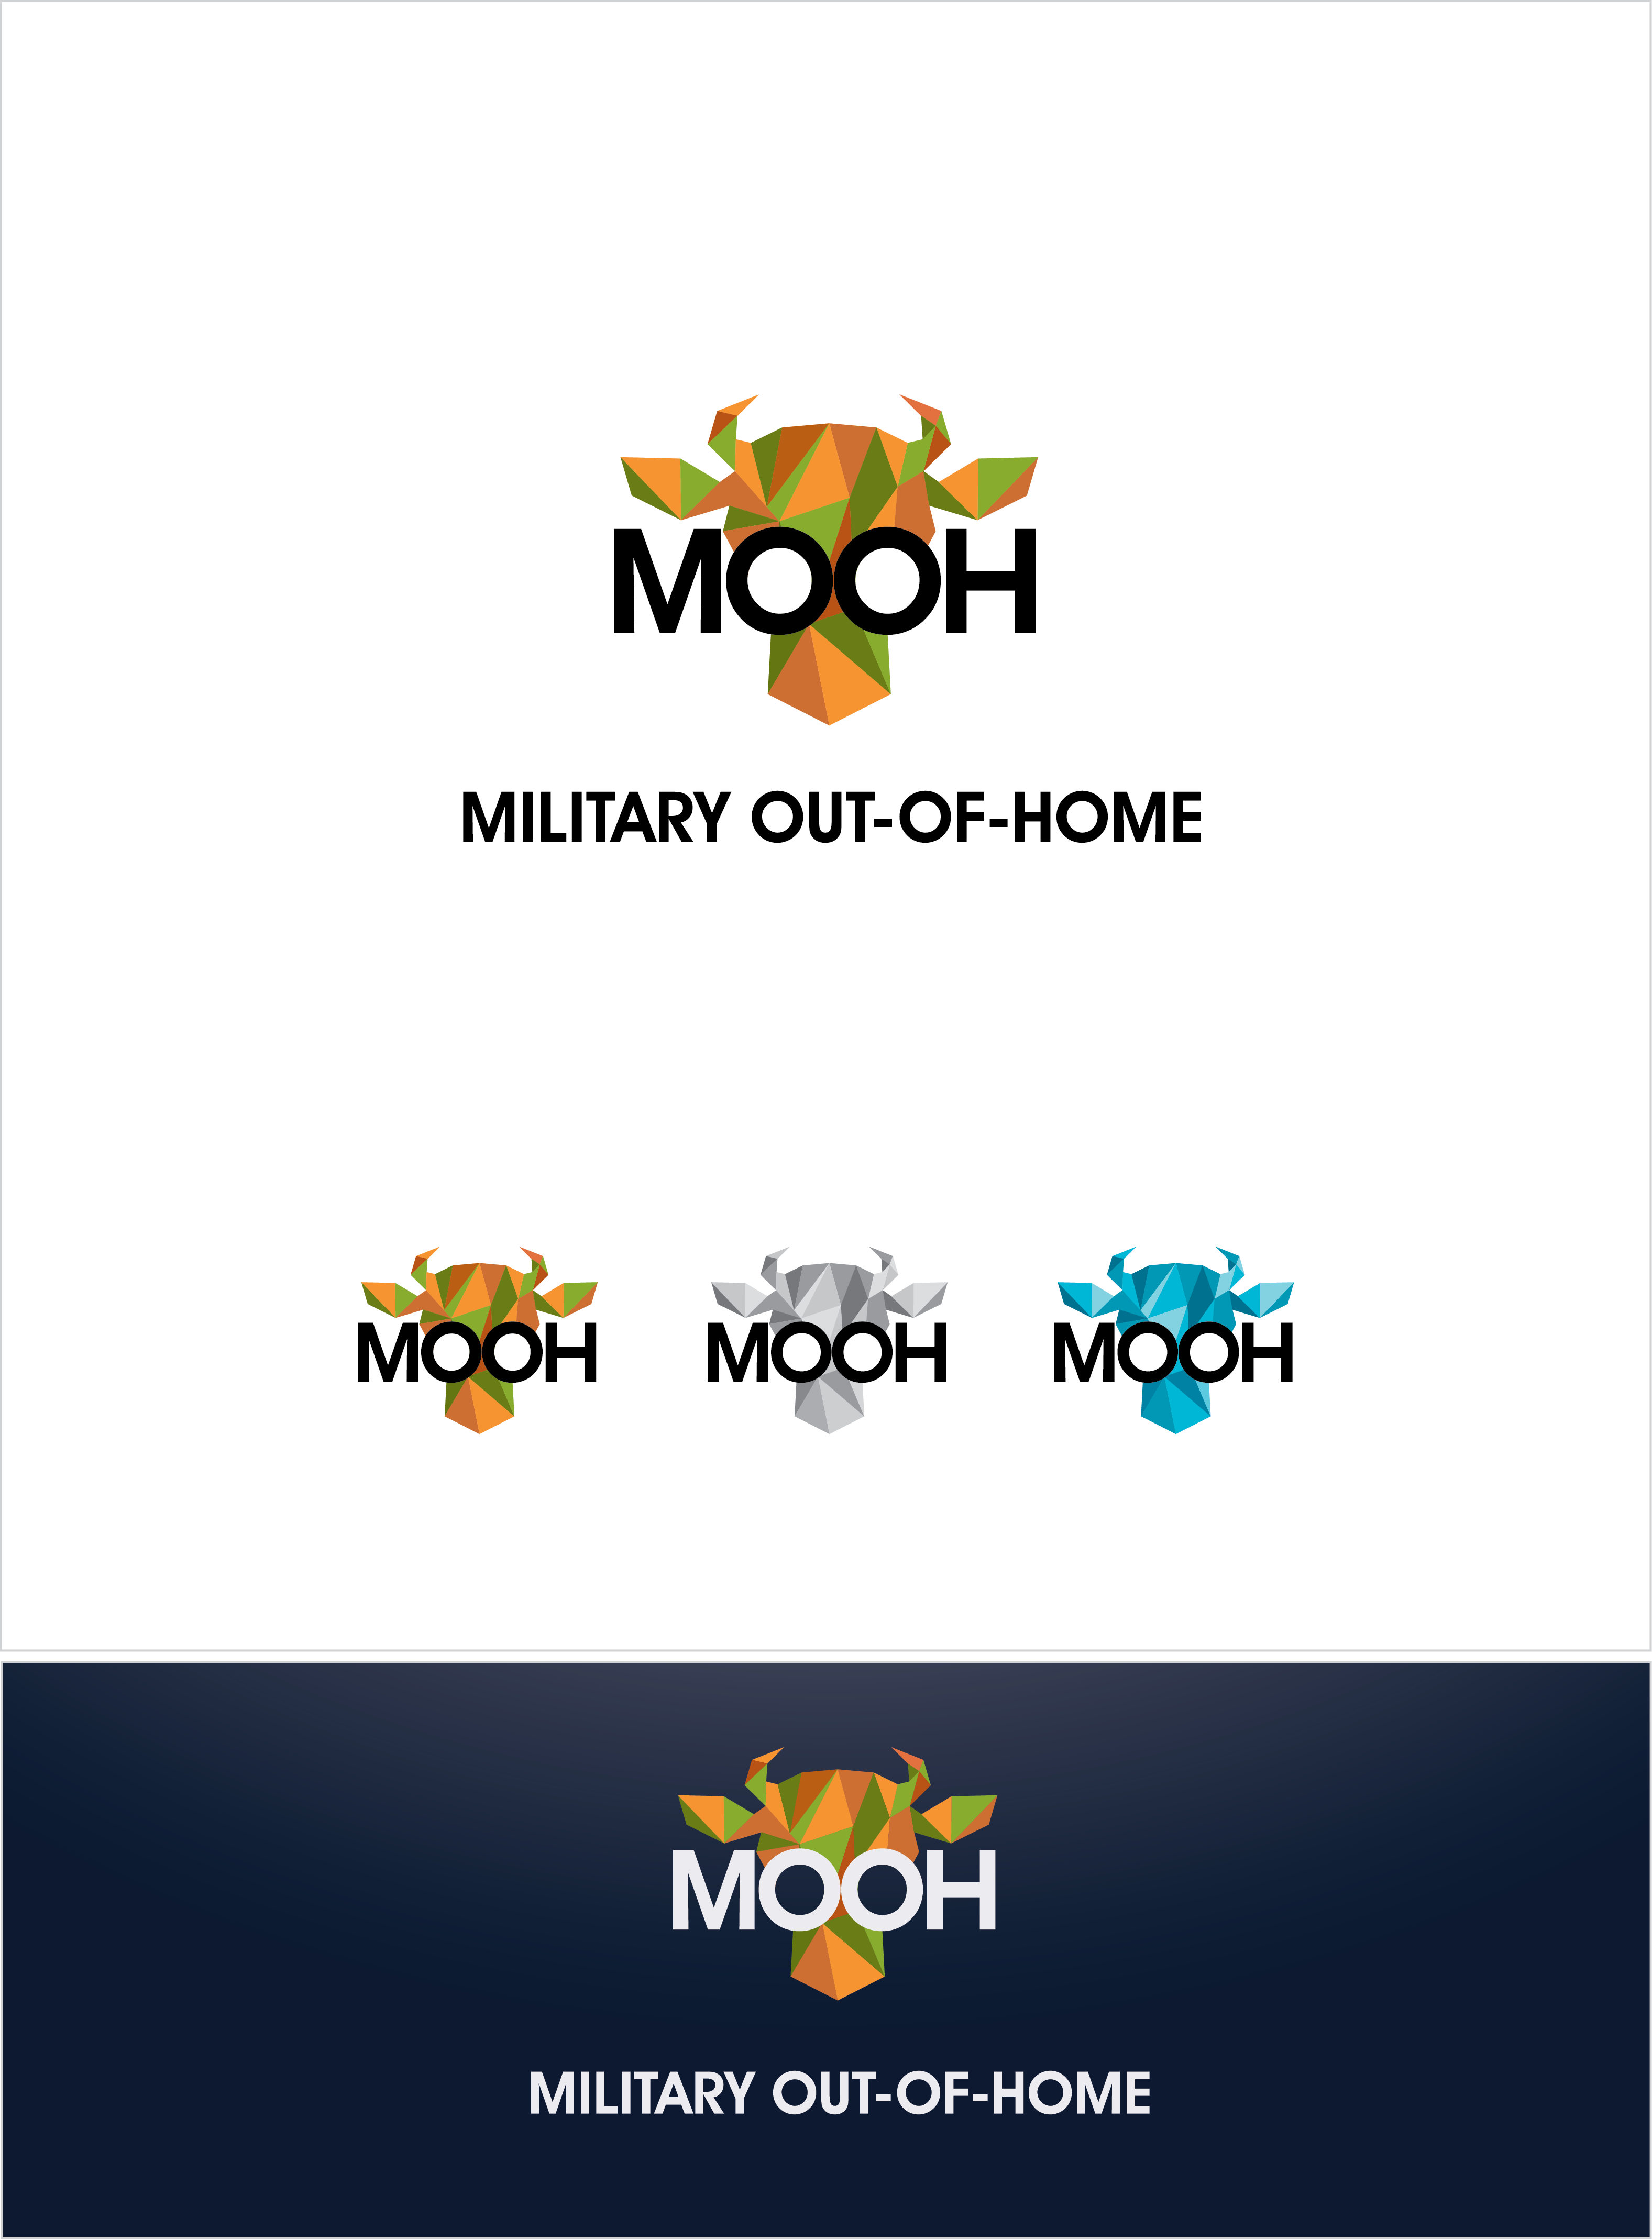 Updated Brief to create a playful brand identity package for Military Out-of-Home.